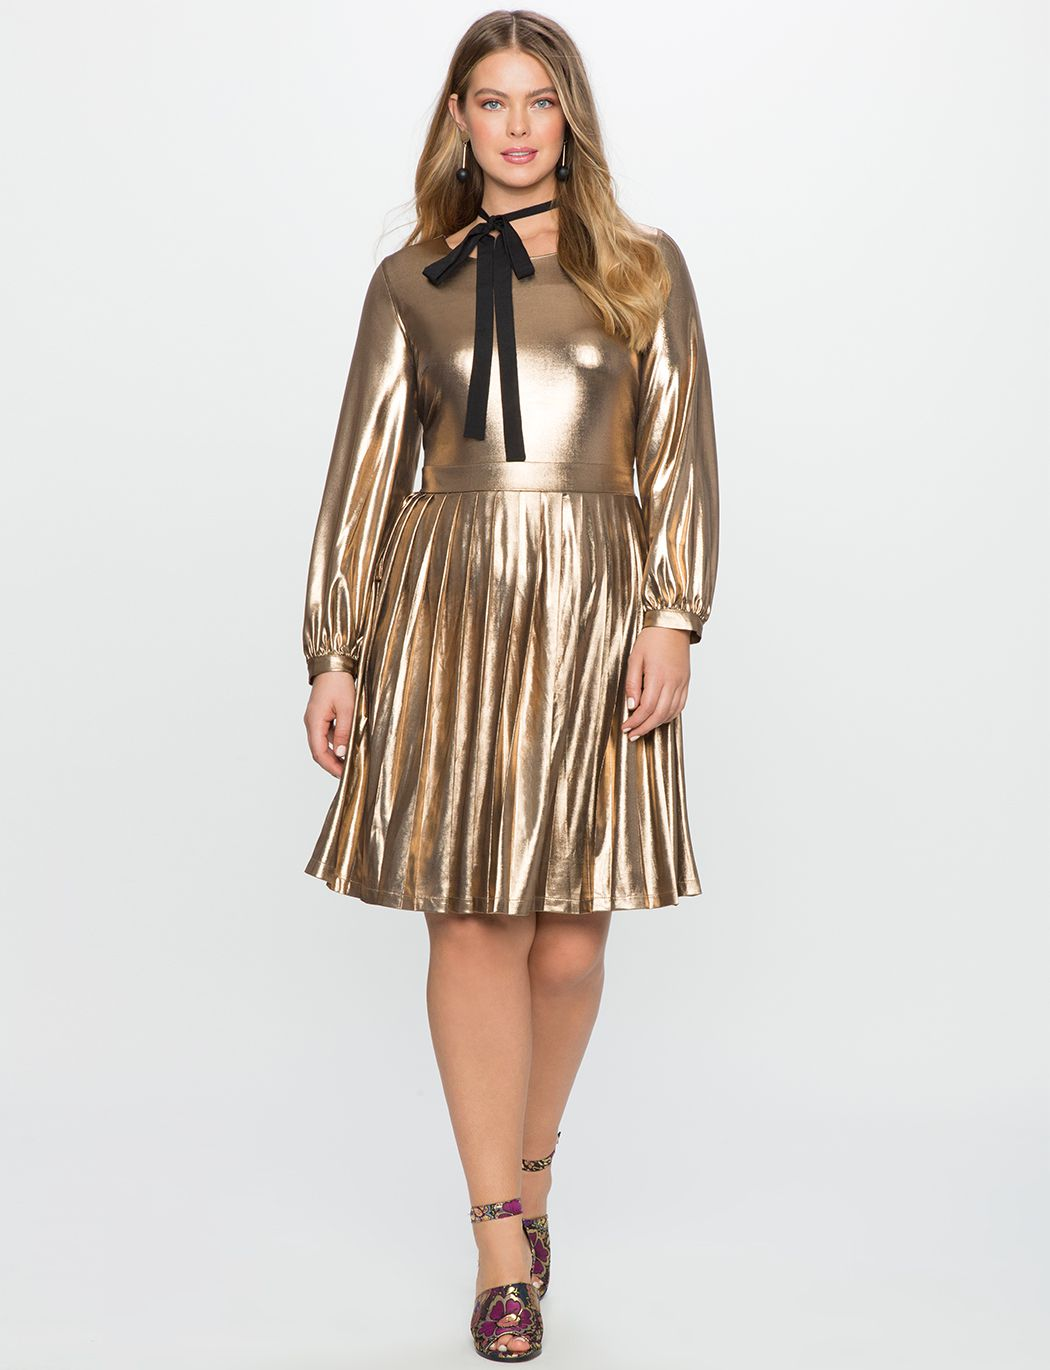 A model in a gold metallic fit and flare dress